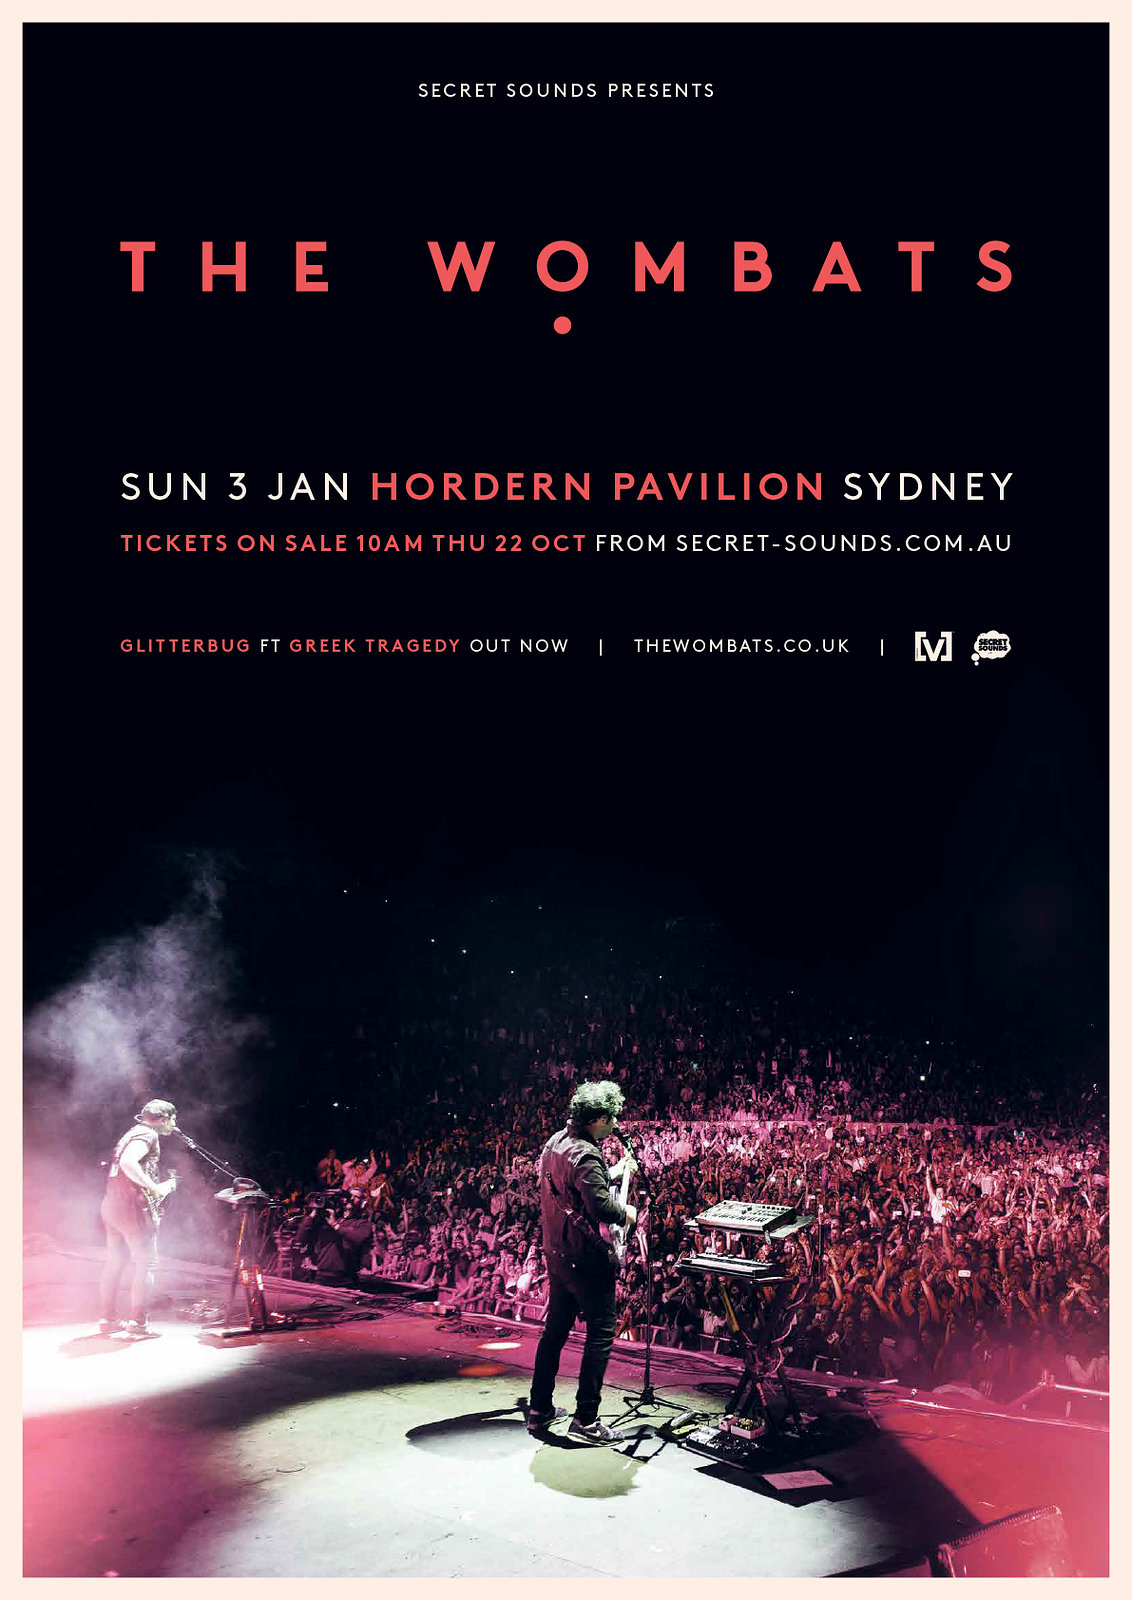 The Wombats - 2016 Tour Poster